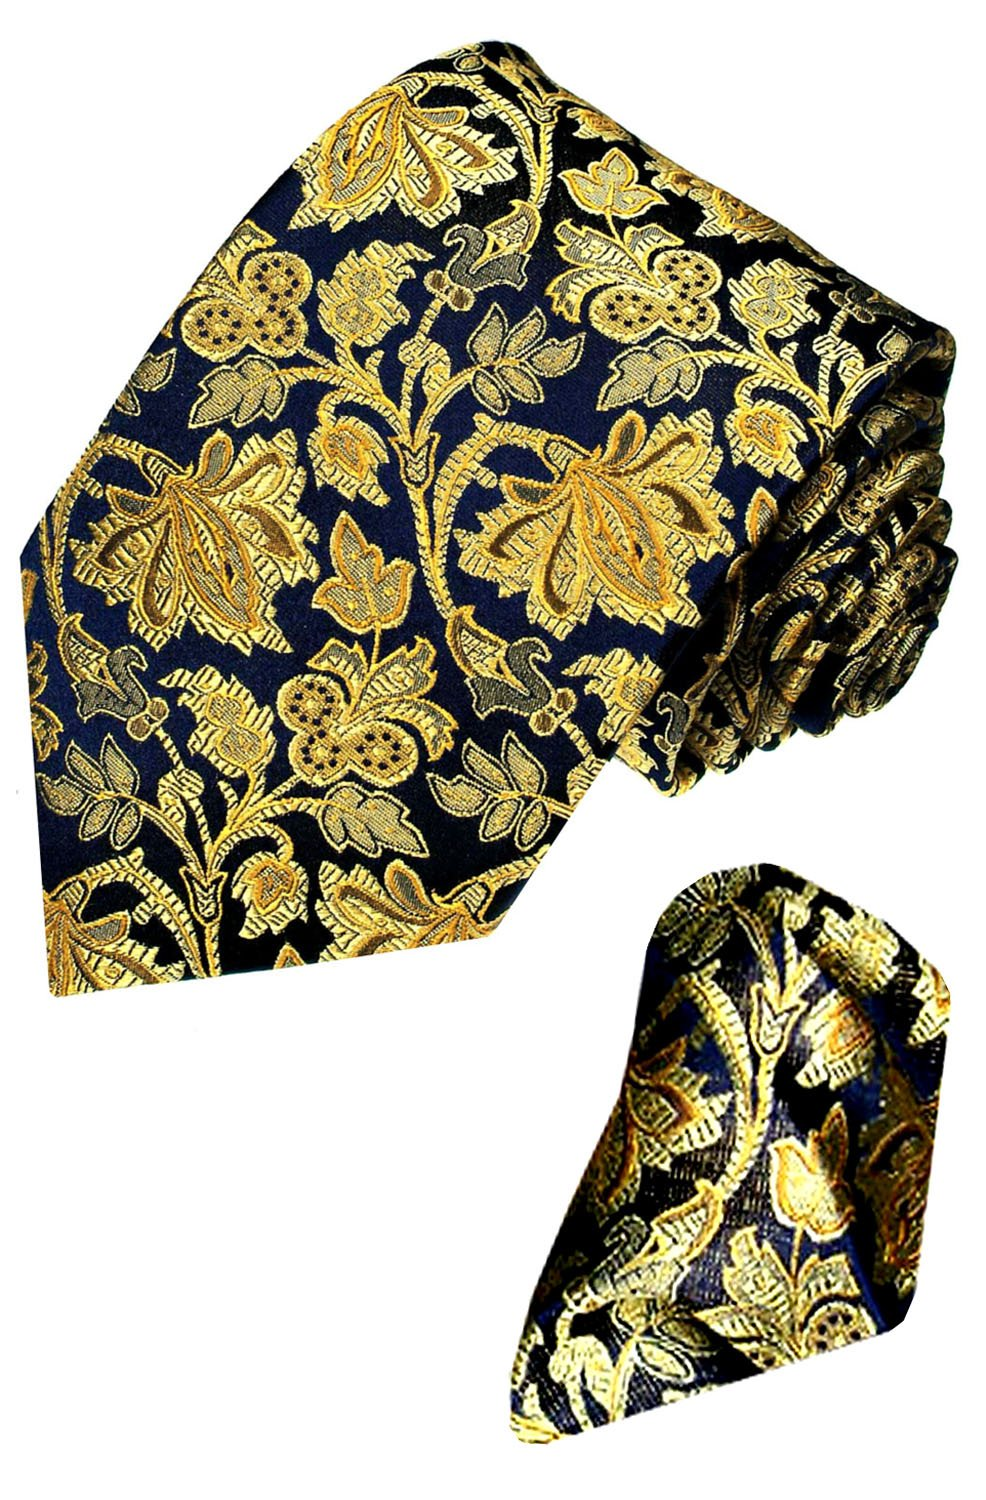 LORENZO CANA Floral Italian 100% Silk Woven Necktie Hanky Set Blue Gold 8421201 by LORENZO CANA